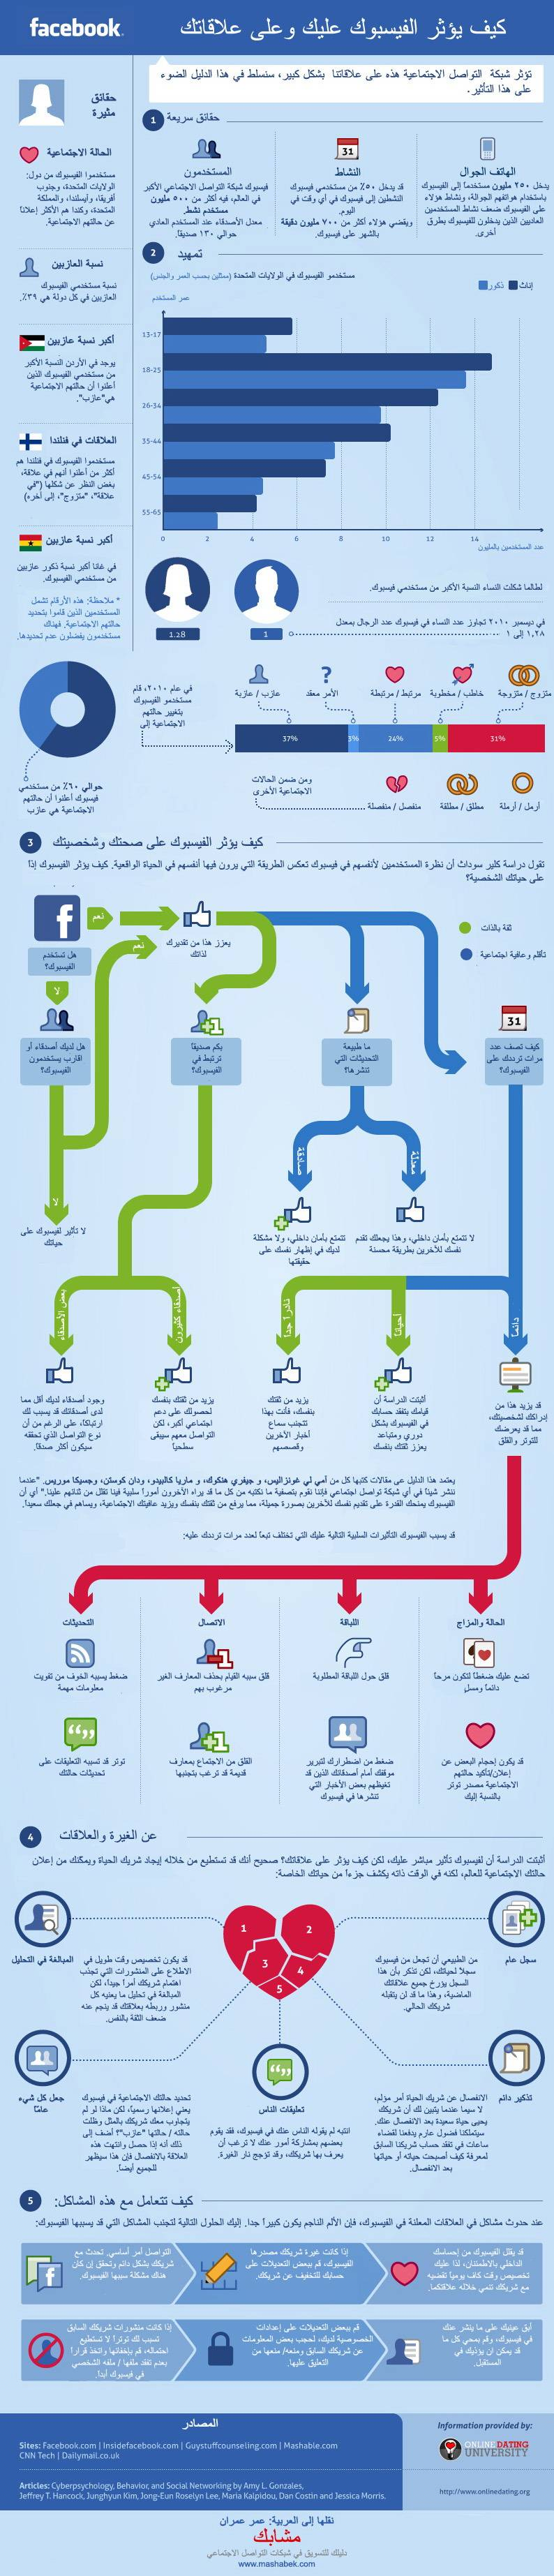 facebook relationships infographic arabic1